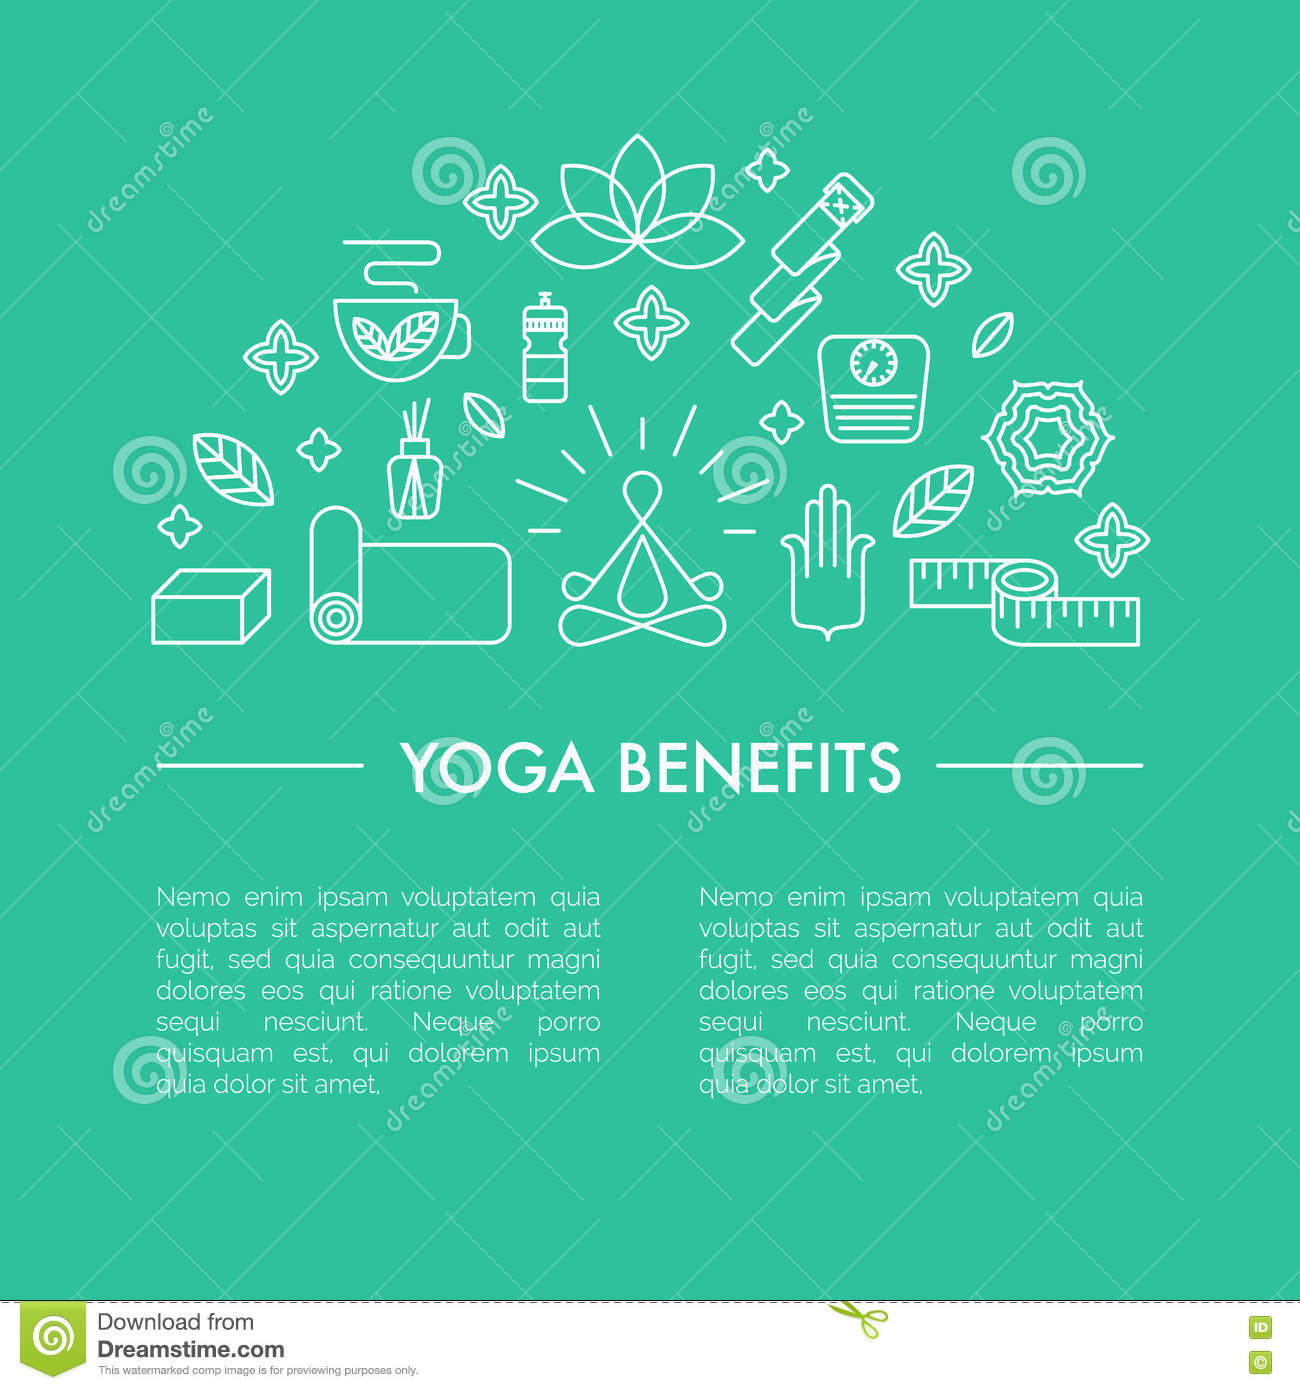 Yoga Benefits Poster Or Iluustration For An Article Stock